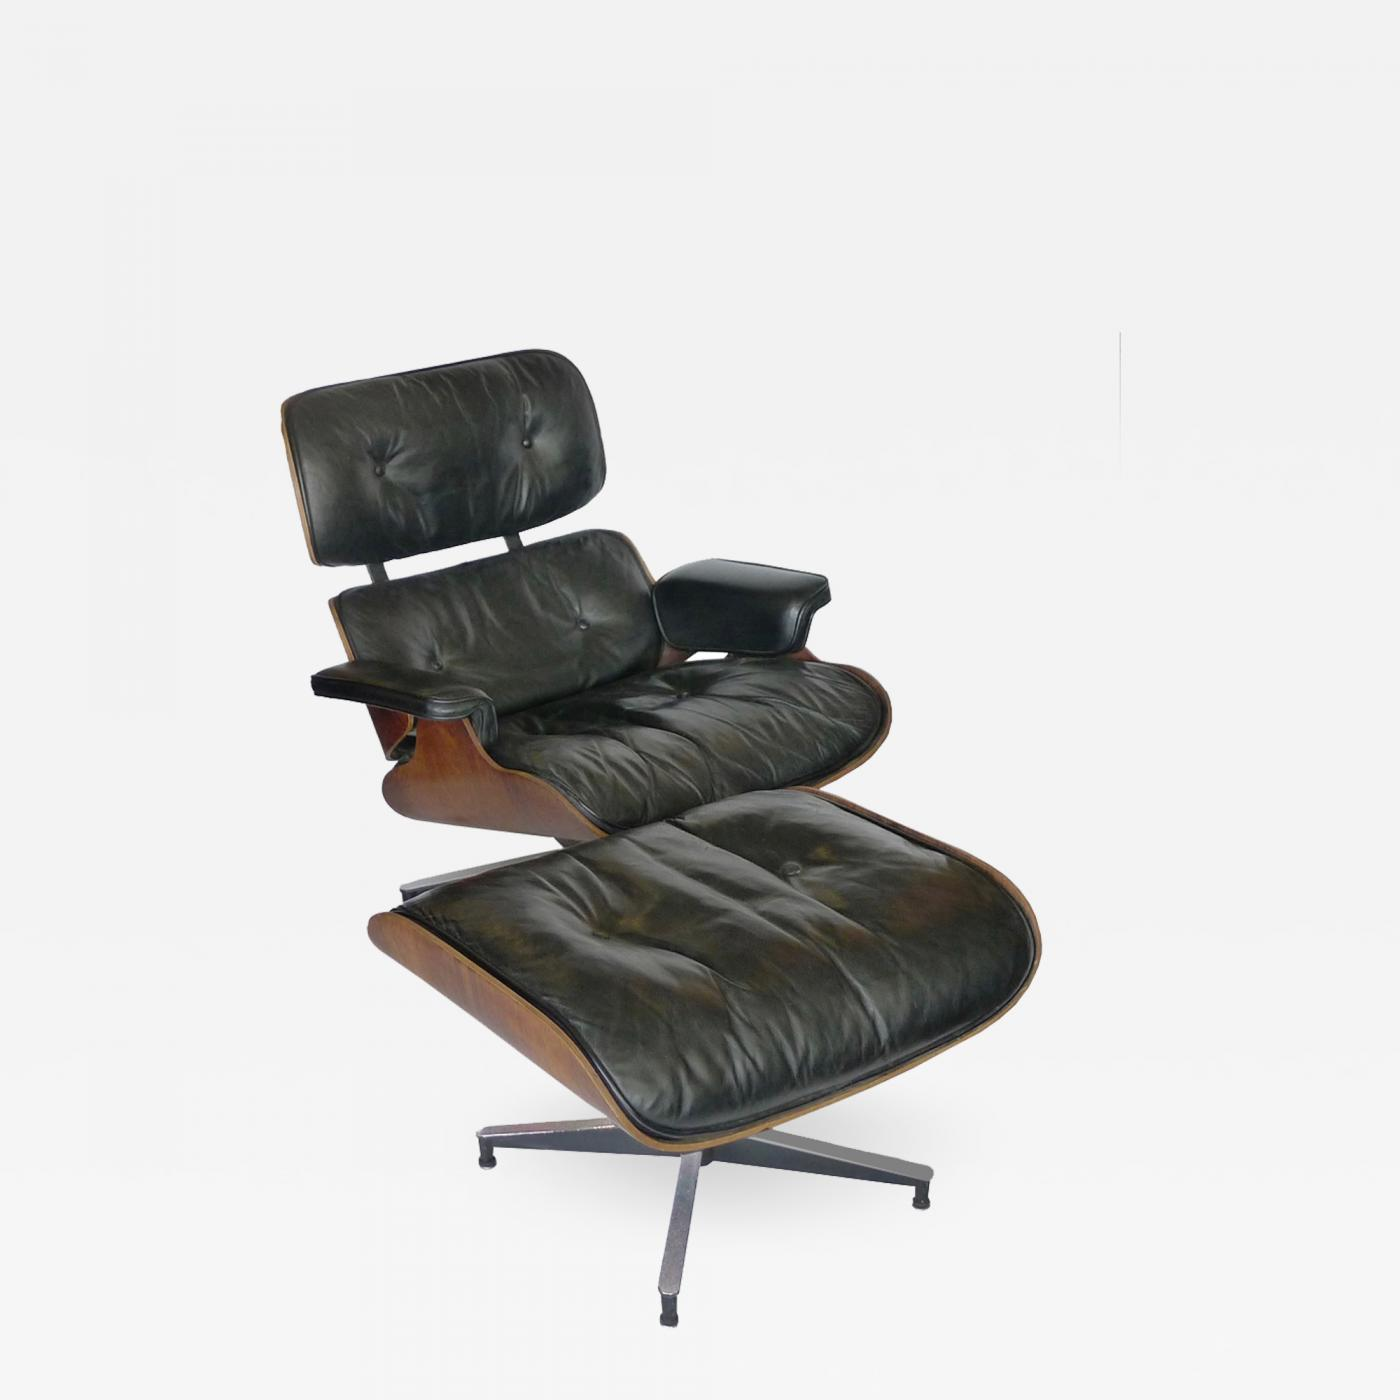 Eames Ottoman Black Leather Rosewood Eames 670 Chair And 671 Ottoman